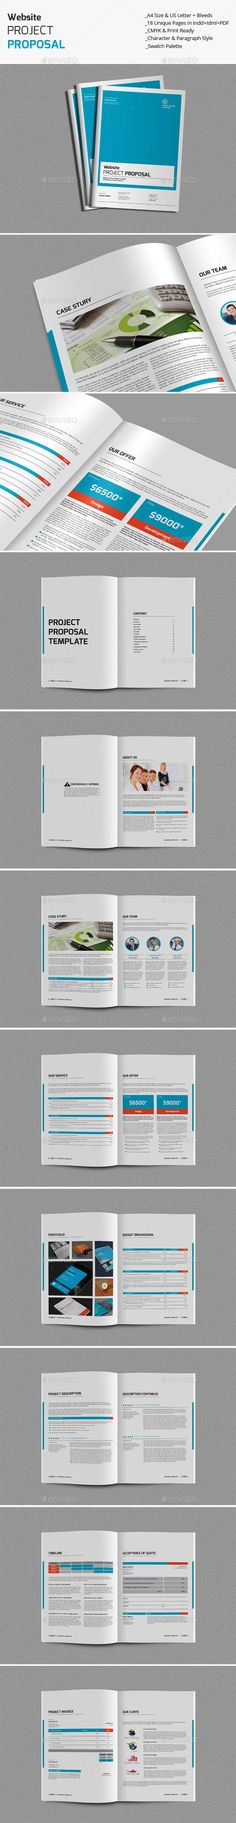 Web Design Proposal Proposals, Proposal templates and Template - advertising proposal template